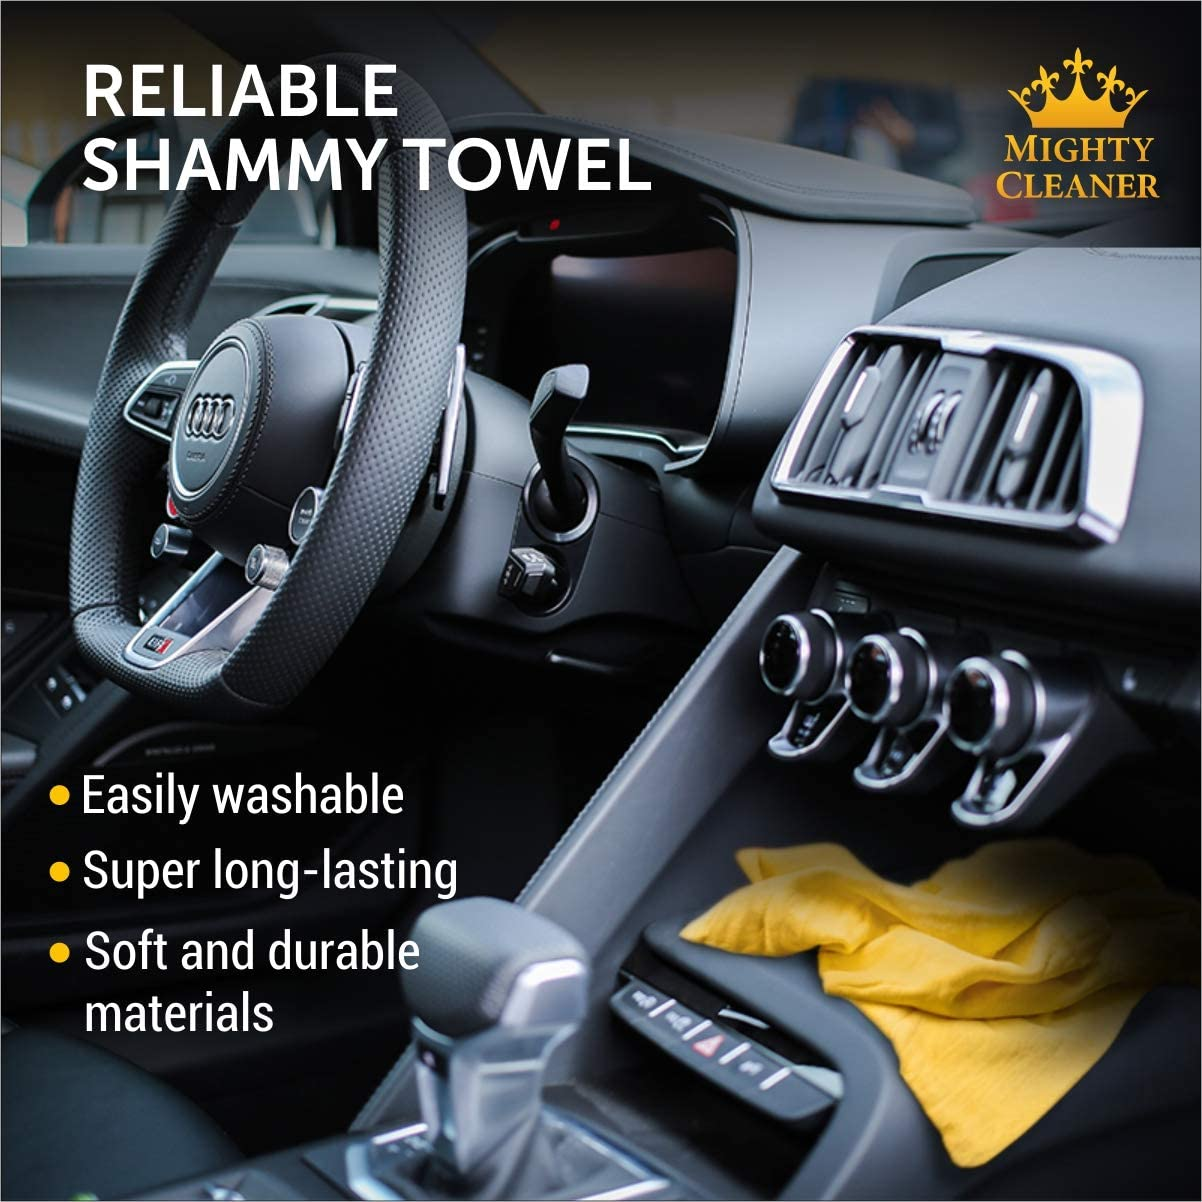 Mighty Cleaner Premium Сar Shammy Towel Original Car Drying Towel Super Absorbent Chamois Cloth for Car 26 x 17